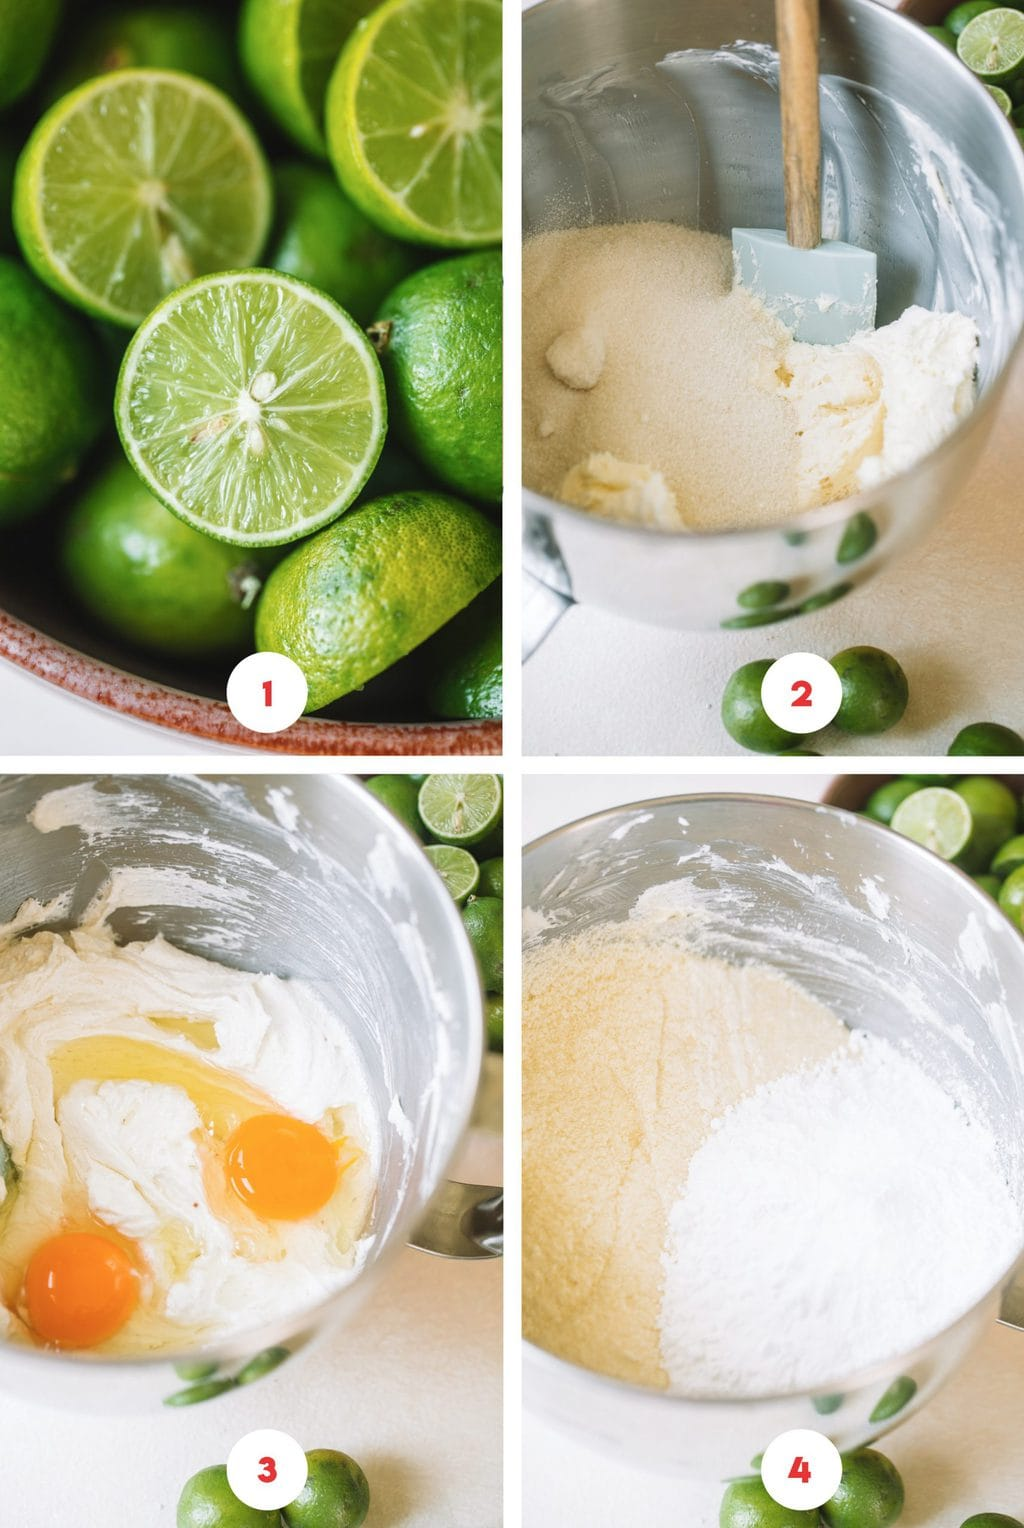 Step by step process on how to make key lime cake batter.